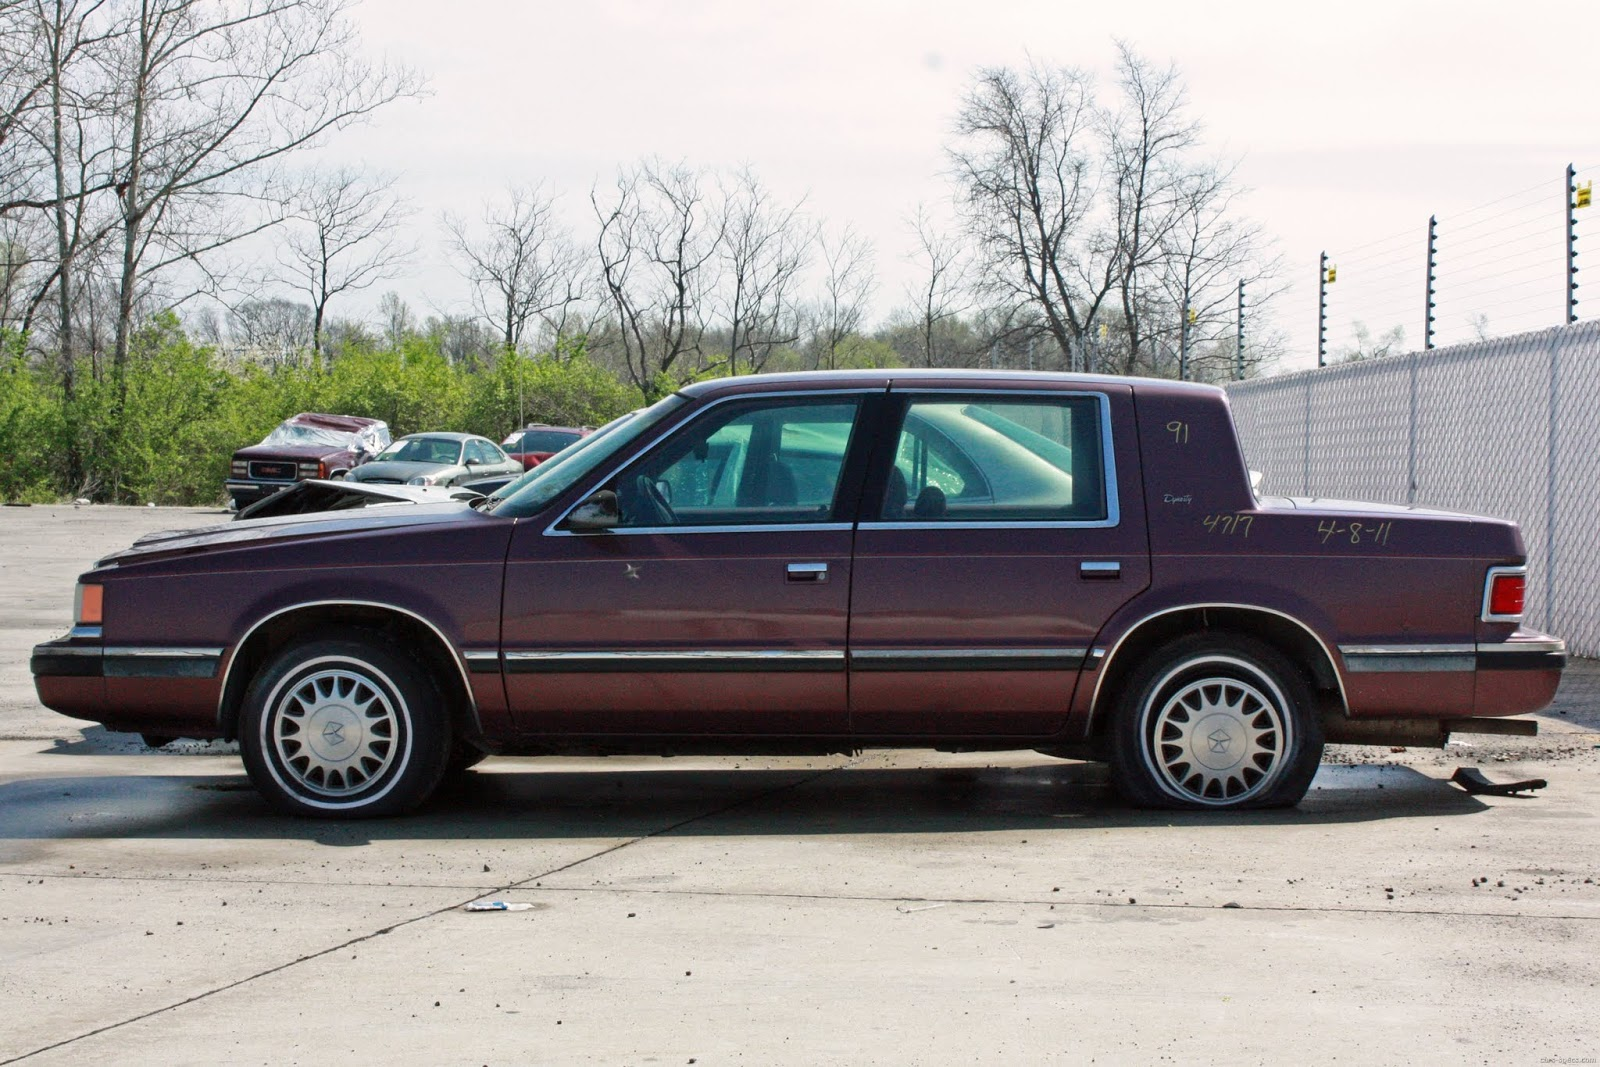 1991 Dodge Dynasty Photos, Informations, Articles - BestCarMag.com